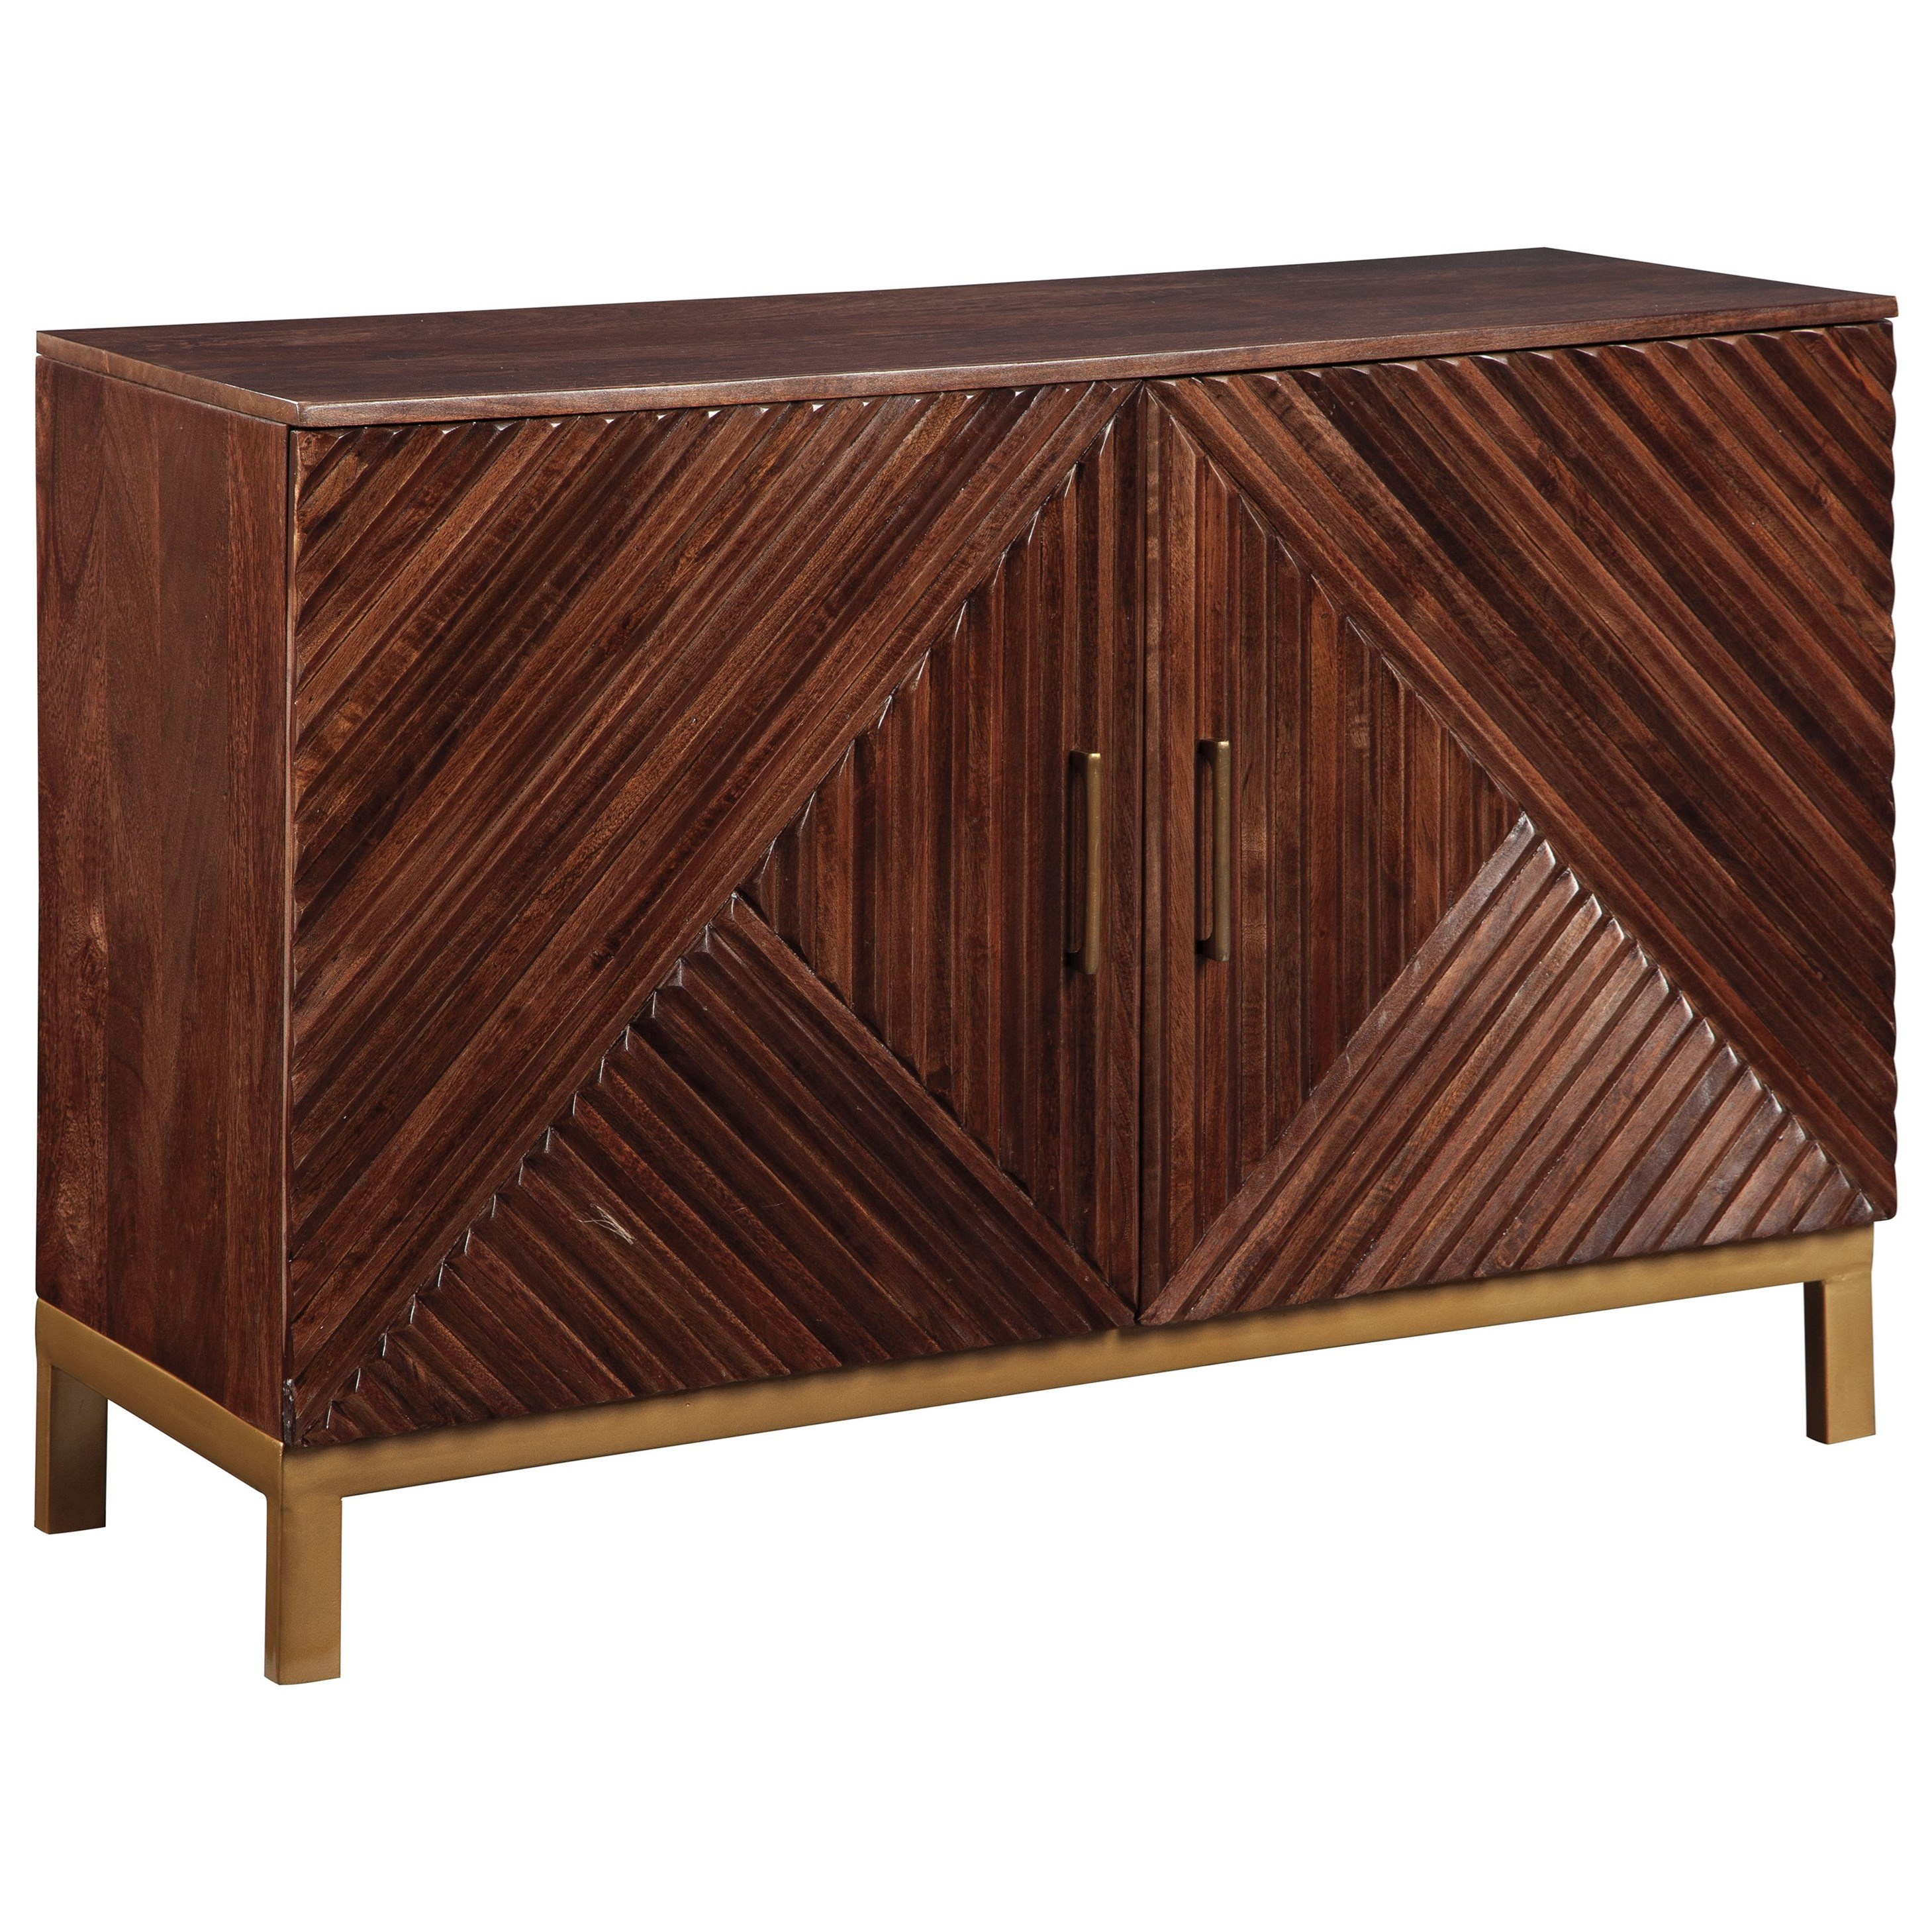 Signature Design by Ashley Forestmin Accent Cabinet - Item Number: A4000051